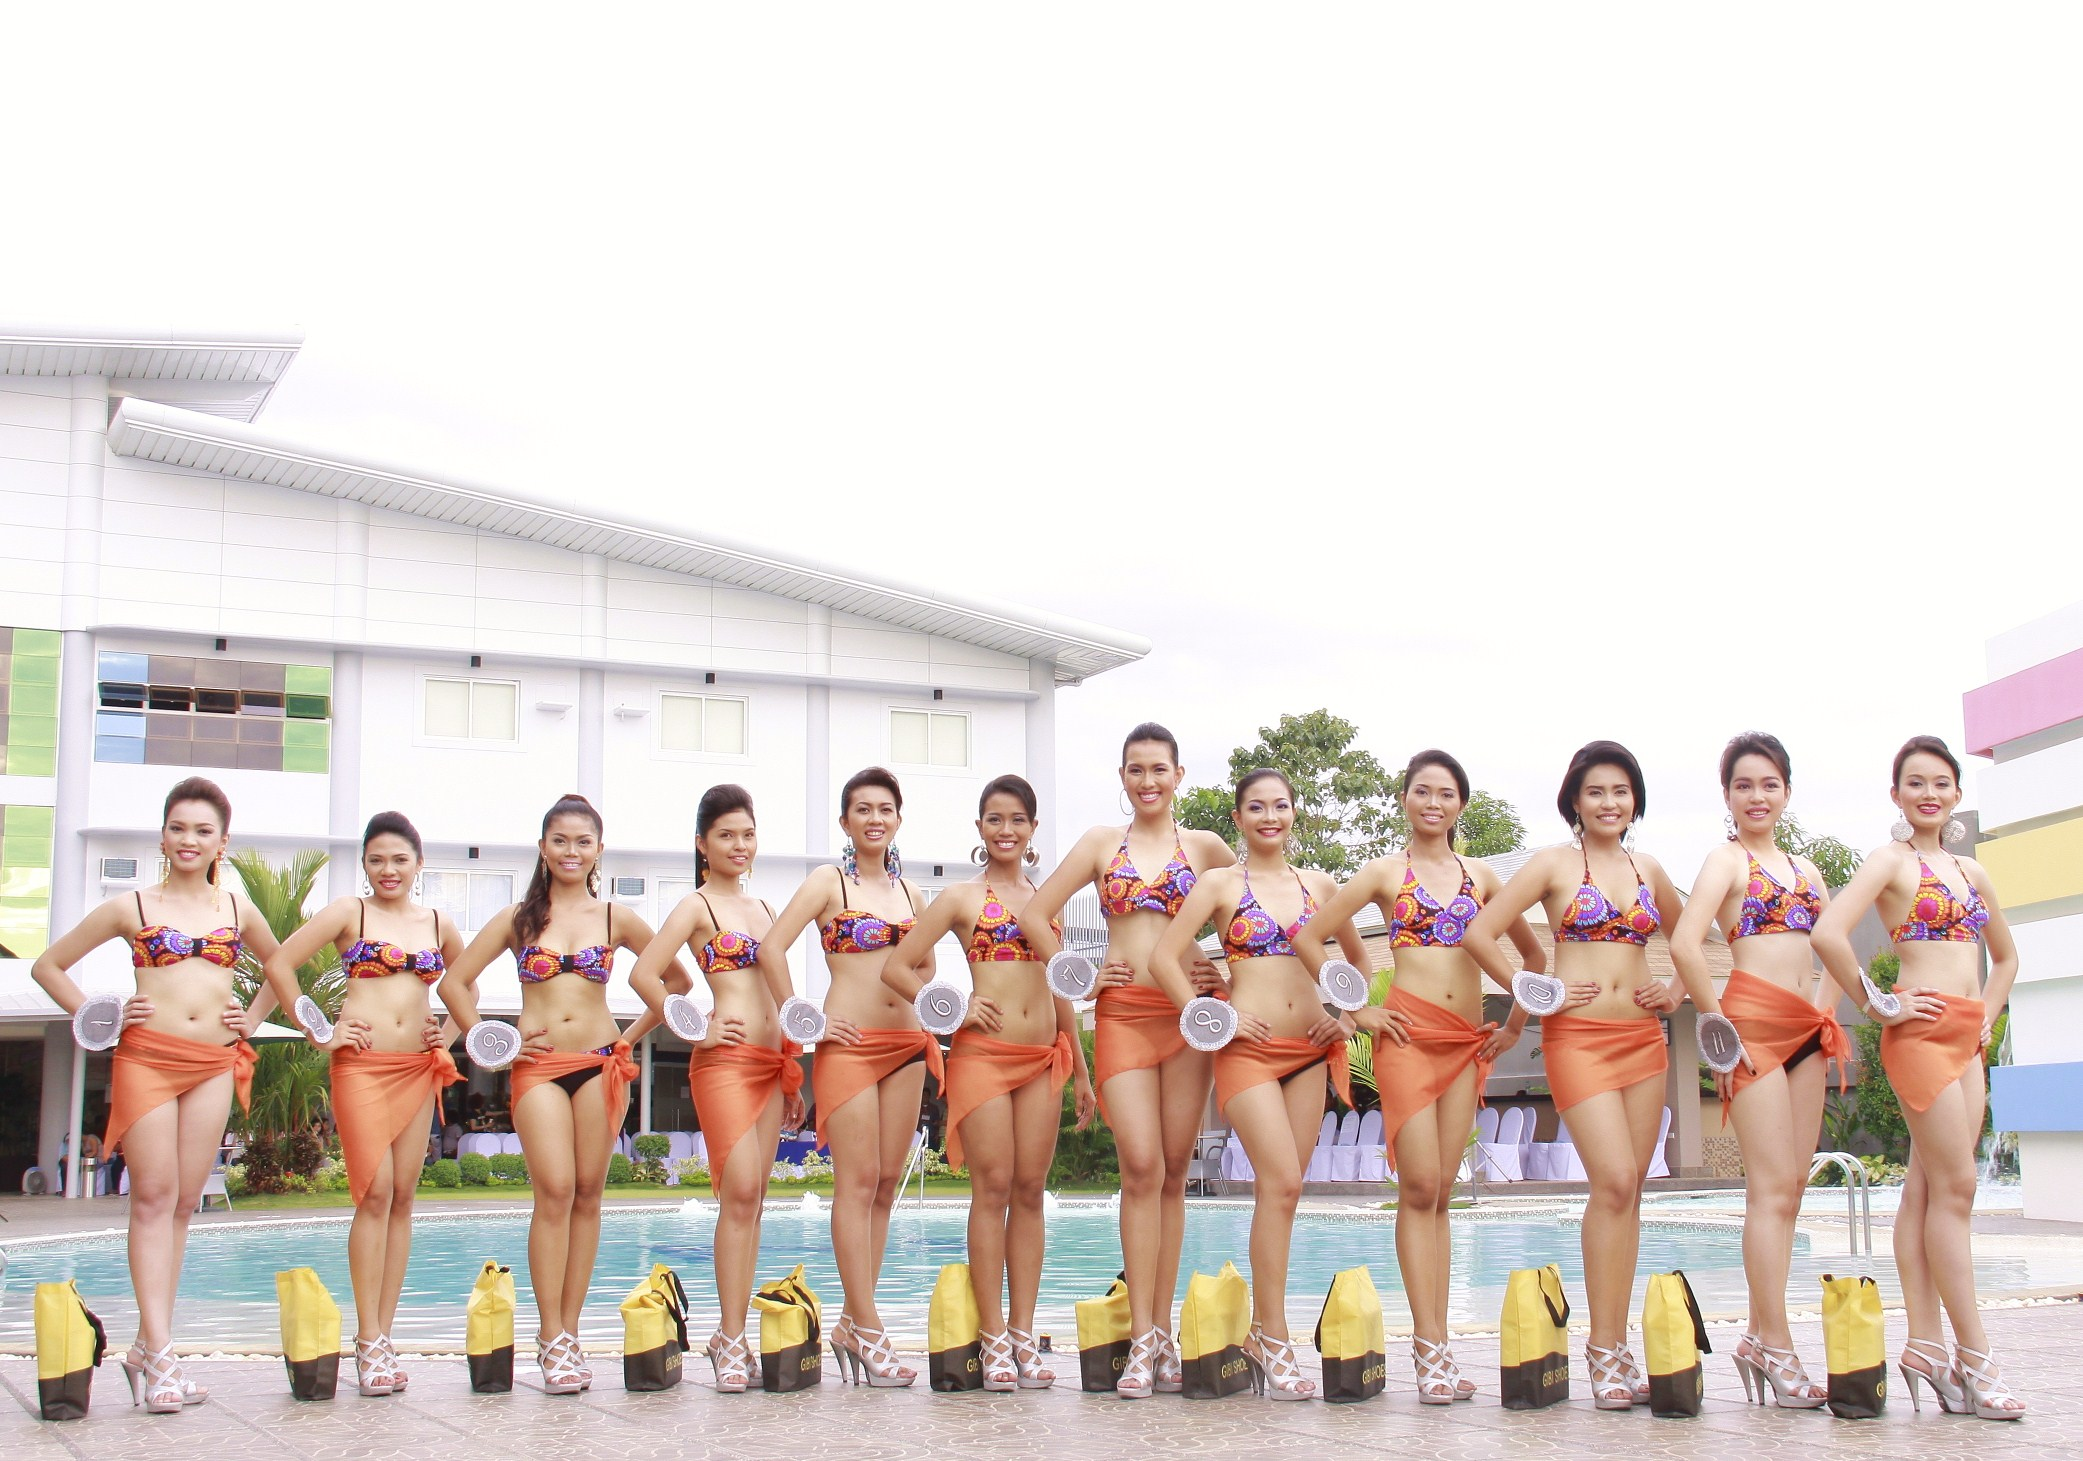 miss kagay-an festival 2011 candidates swimsuits